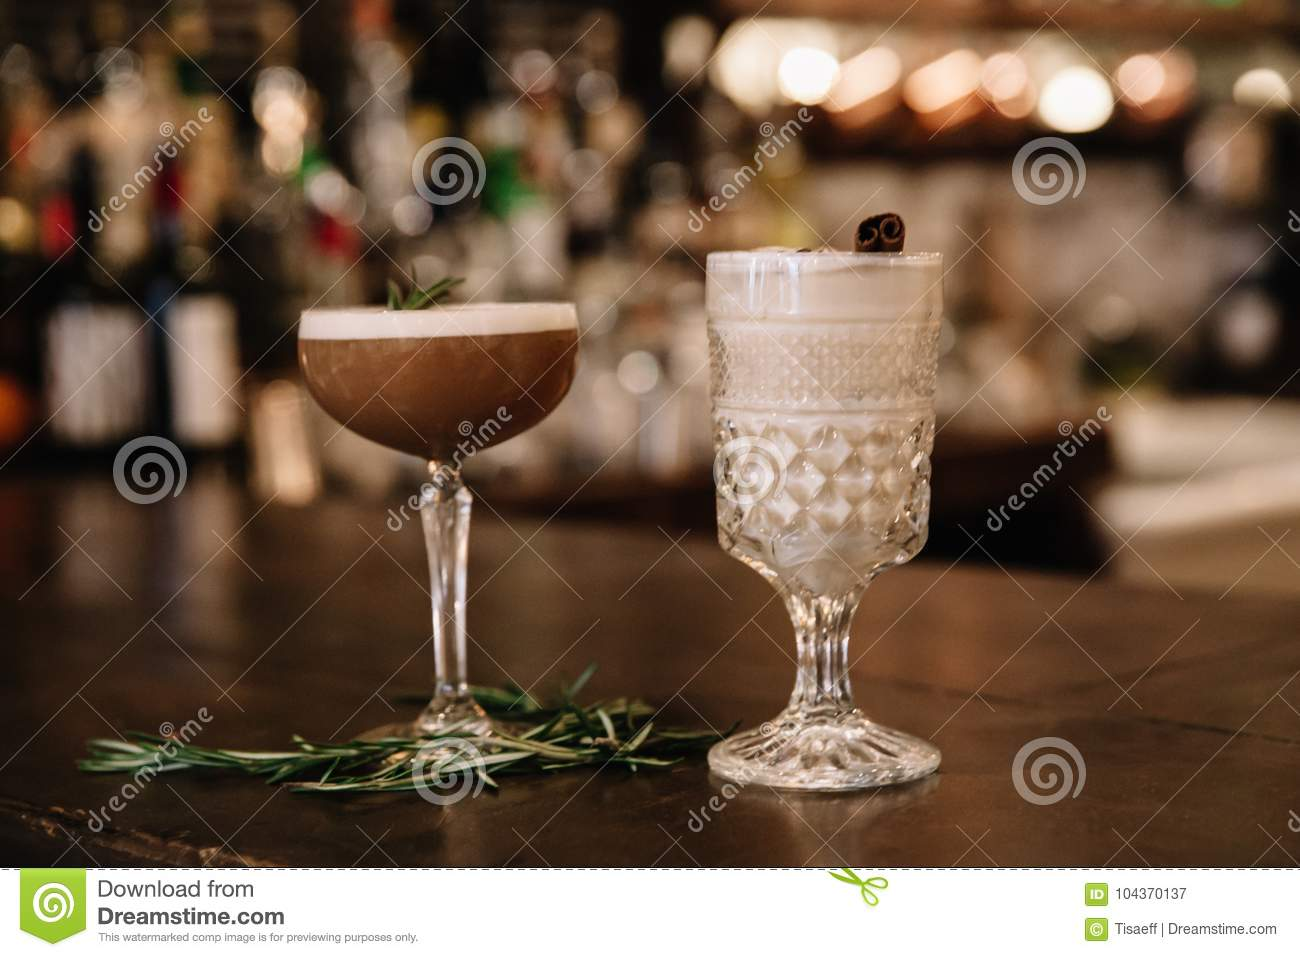 Two creamy alcoholic cocktails with a bar in the background